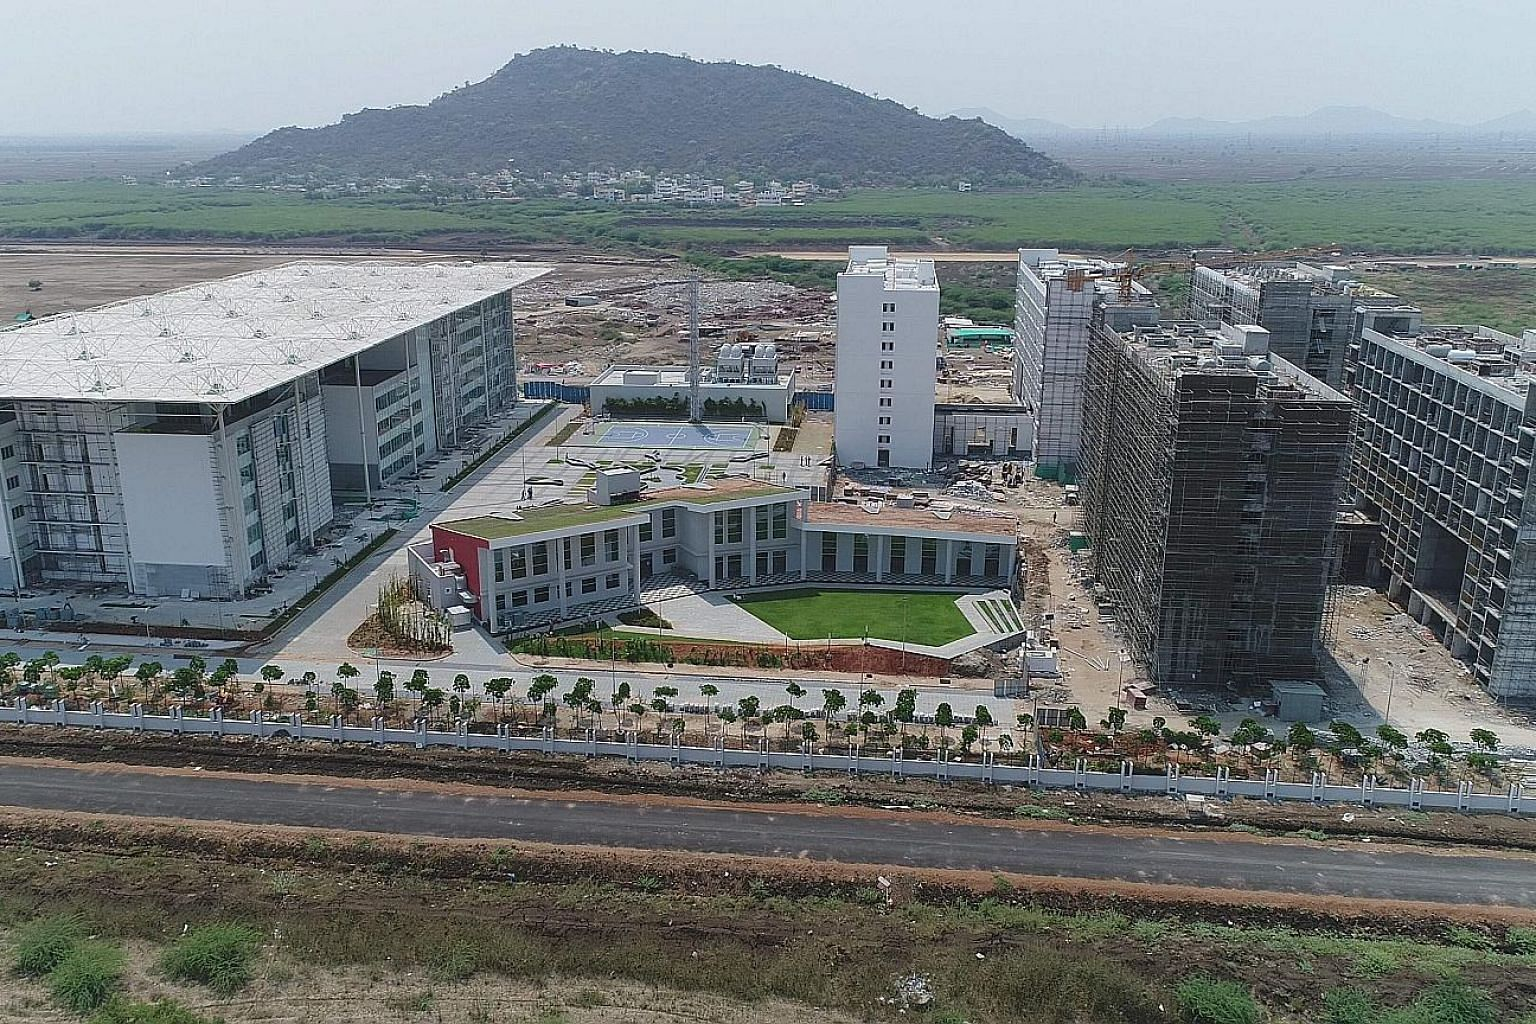 Amaravati, Andhra Pradesh's new capital city, is being built from scratch along the Krishna river. Singapore has been involved in helping the southern state build the city since 2014, and two agreements to begin work on the start-up area were signed